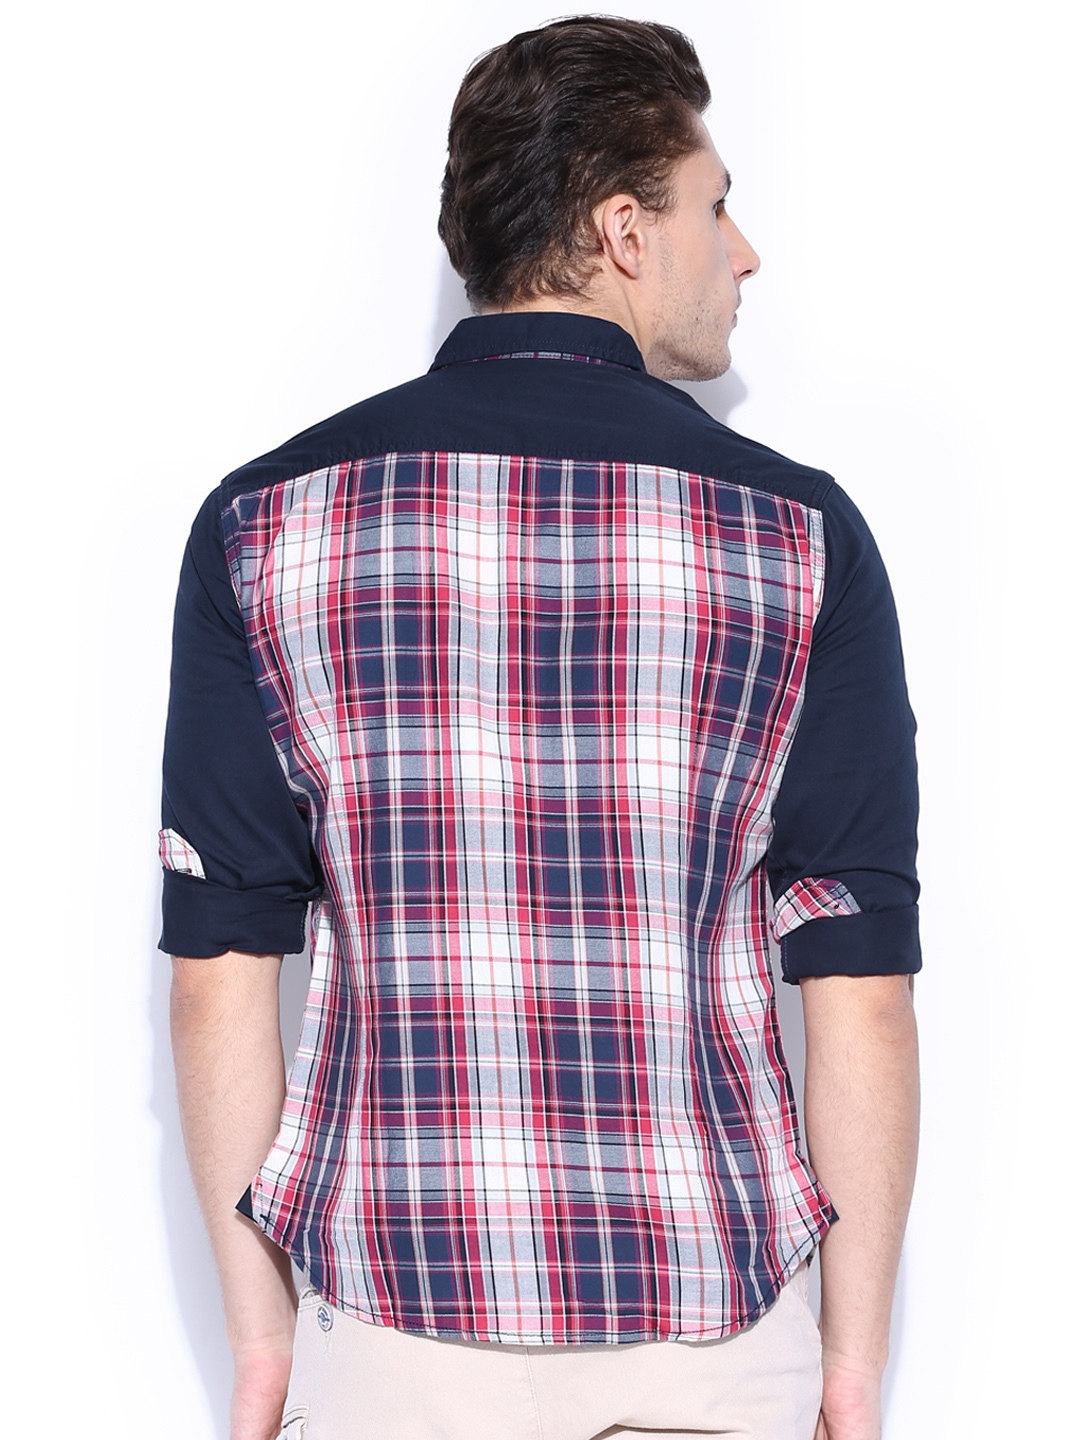 Myntra hrx men navy blue pink checked casual shirt for Navy blue shirt online